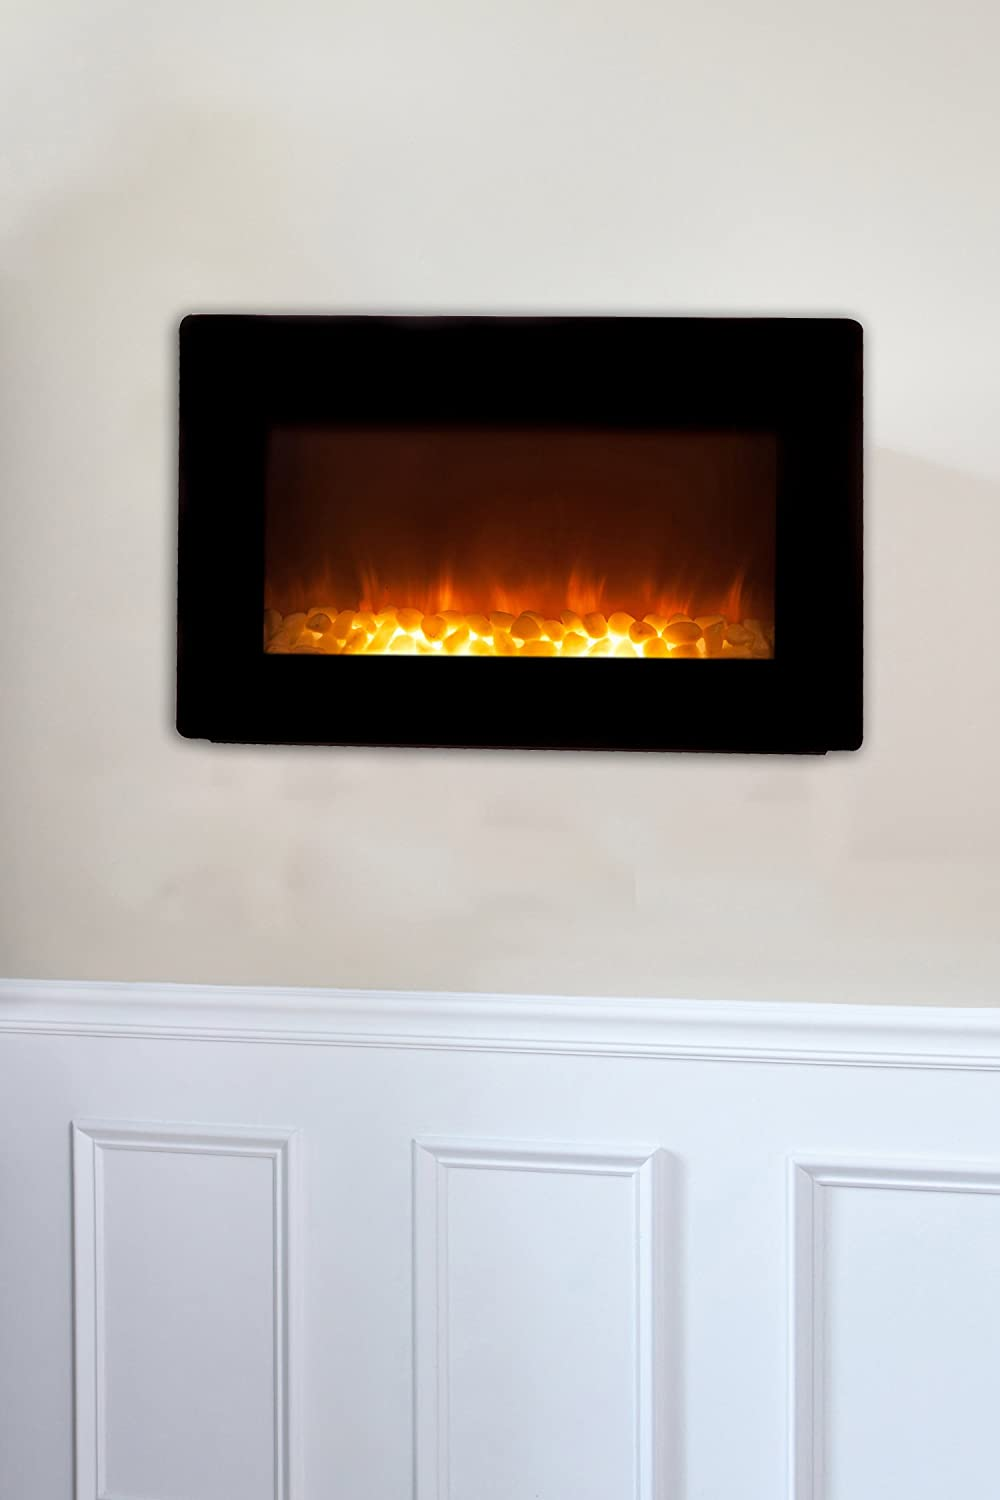 Buy Fire Sense Black Wall Mounted Electric Fireplace: Outdoor Fireplaces - Amazon.com ? FREE DELIVERY possible on eligible purchases